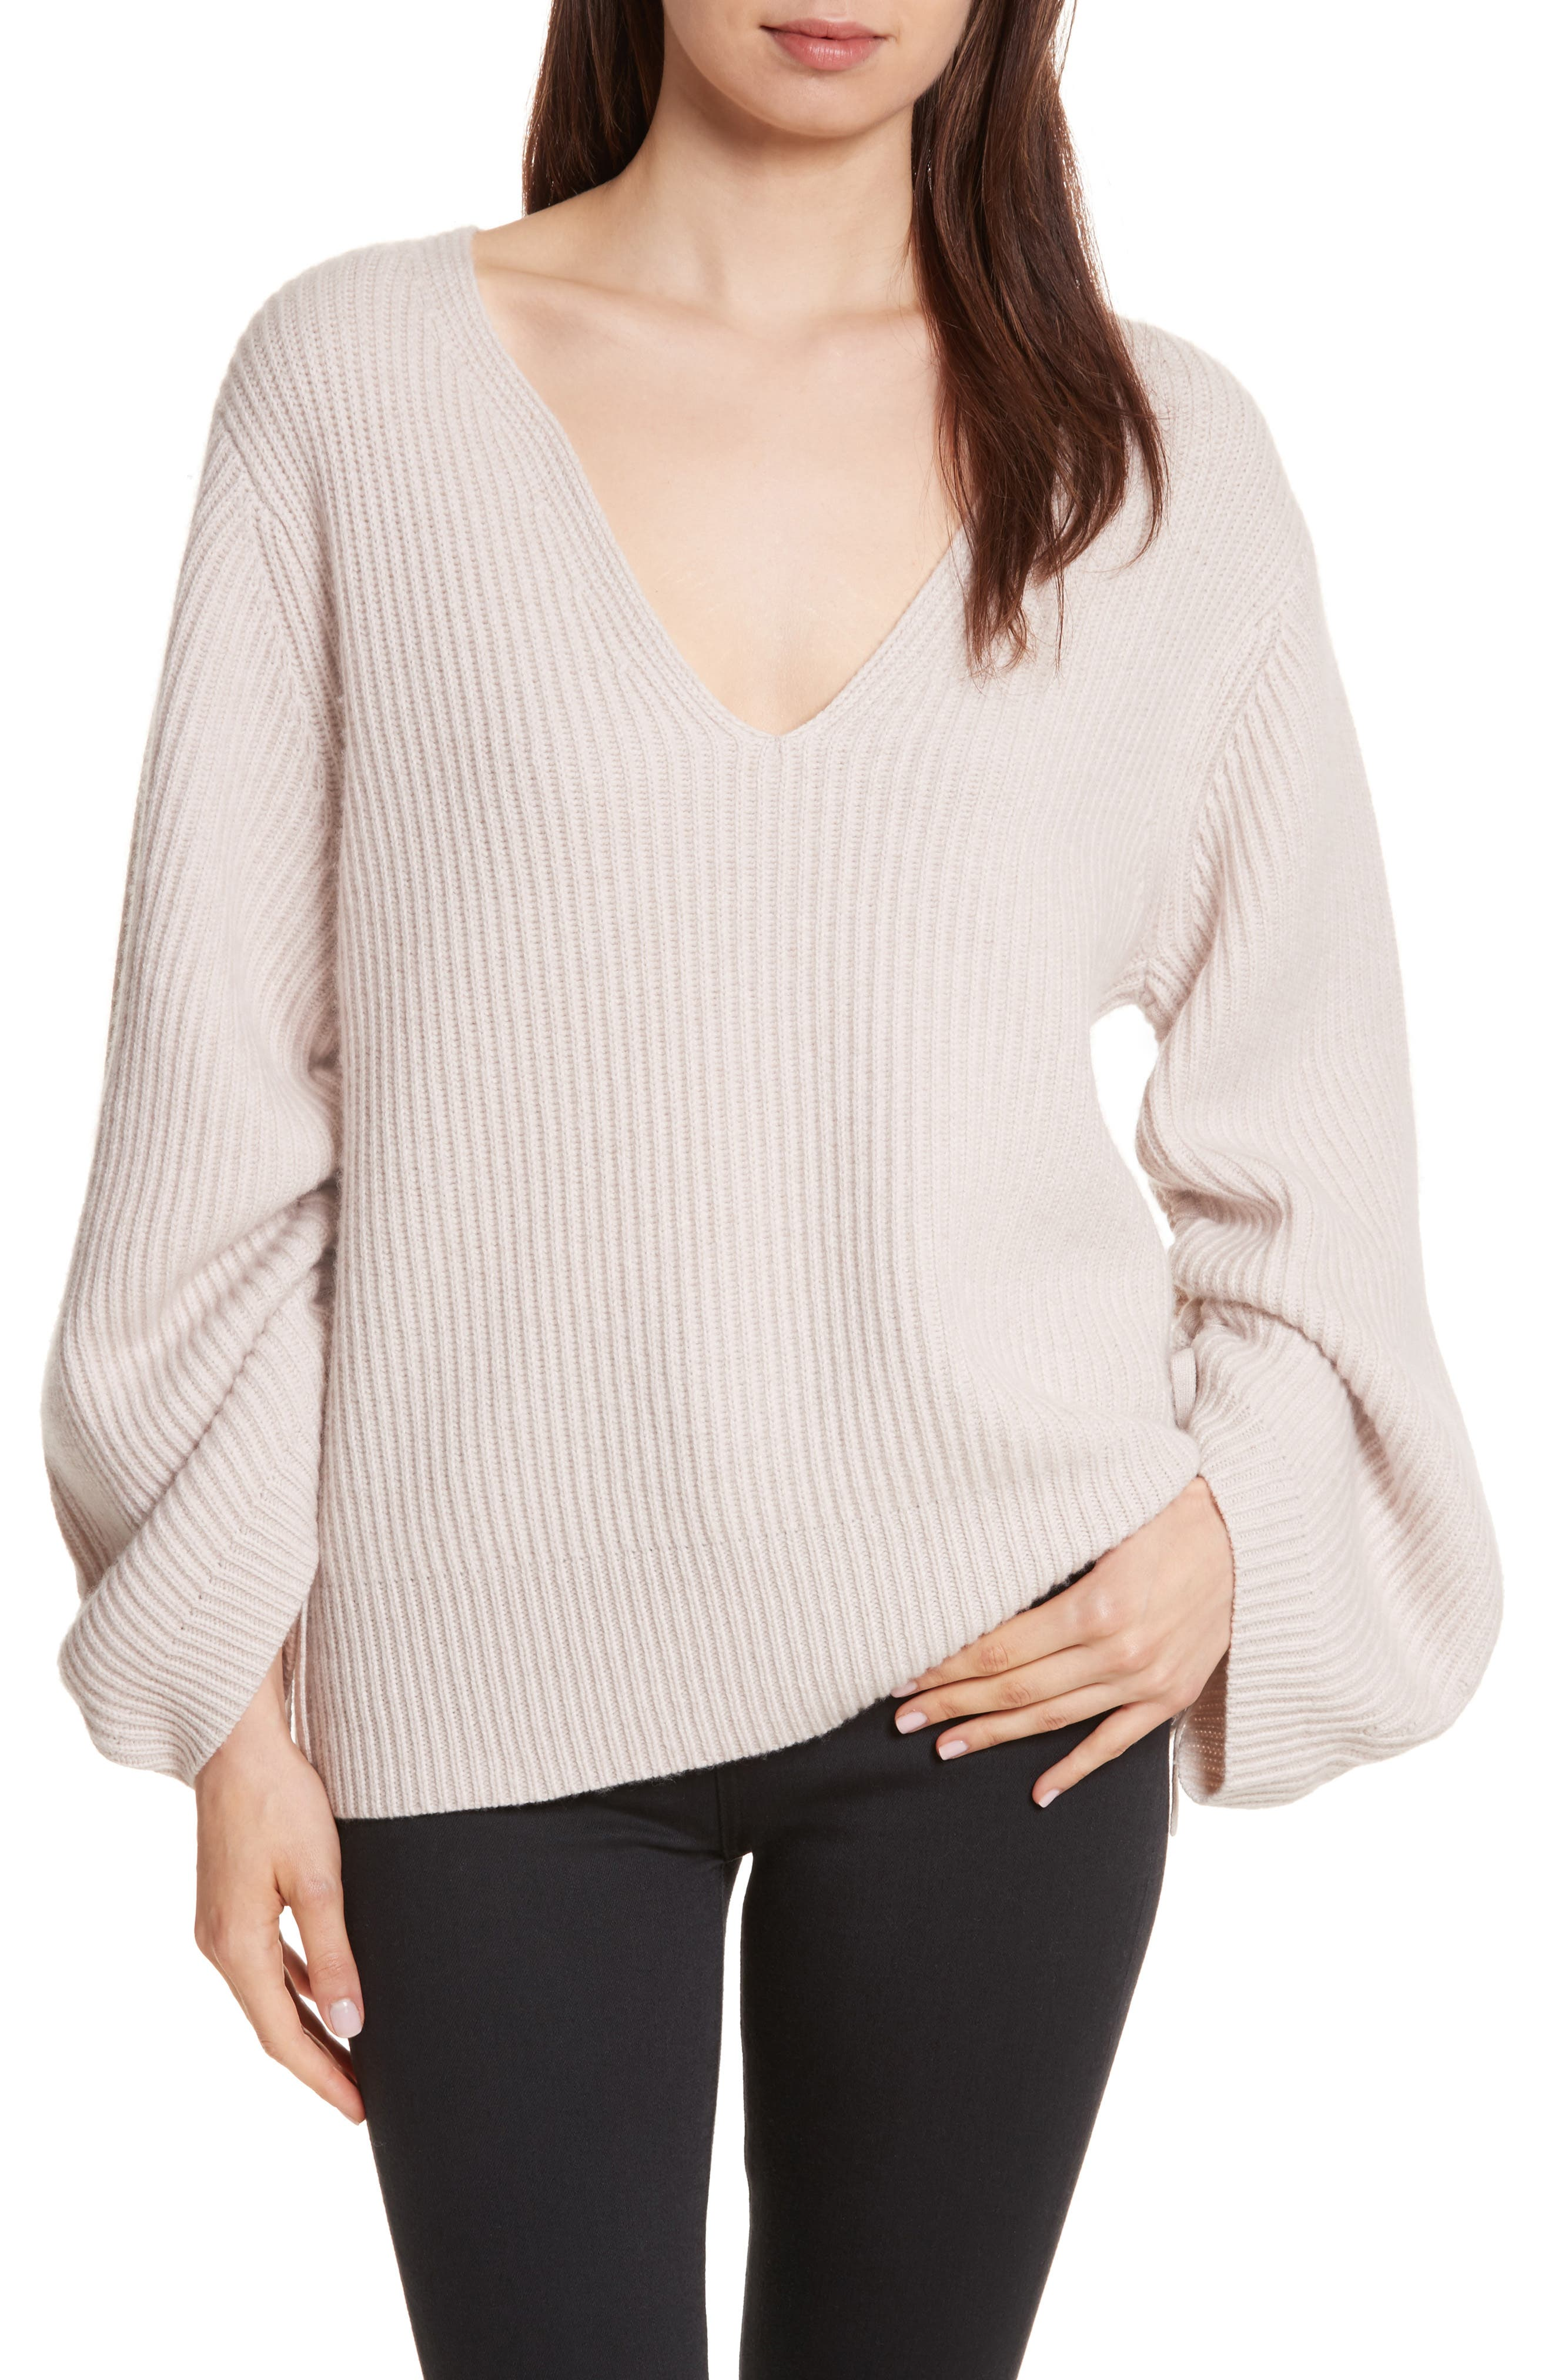 Anneka Wool & Cashmere Puff Sleeve Sweater,                             Main thumbnail 1, color,                             270